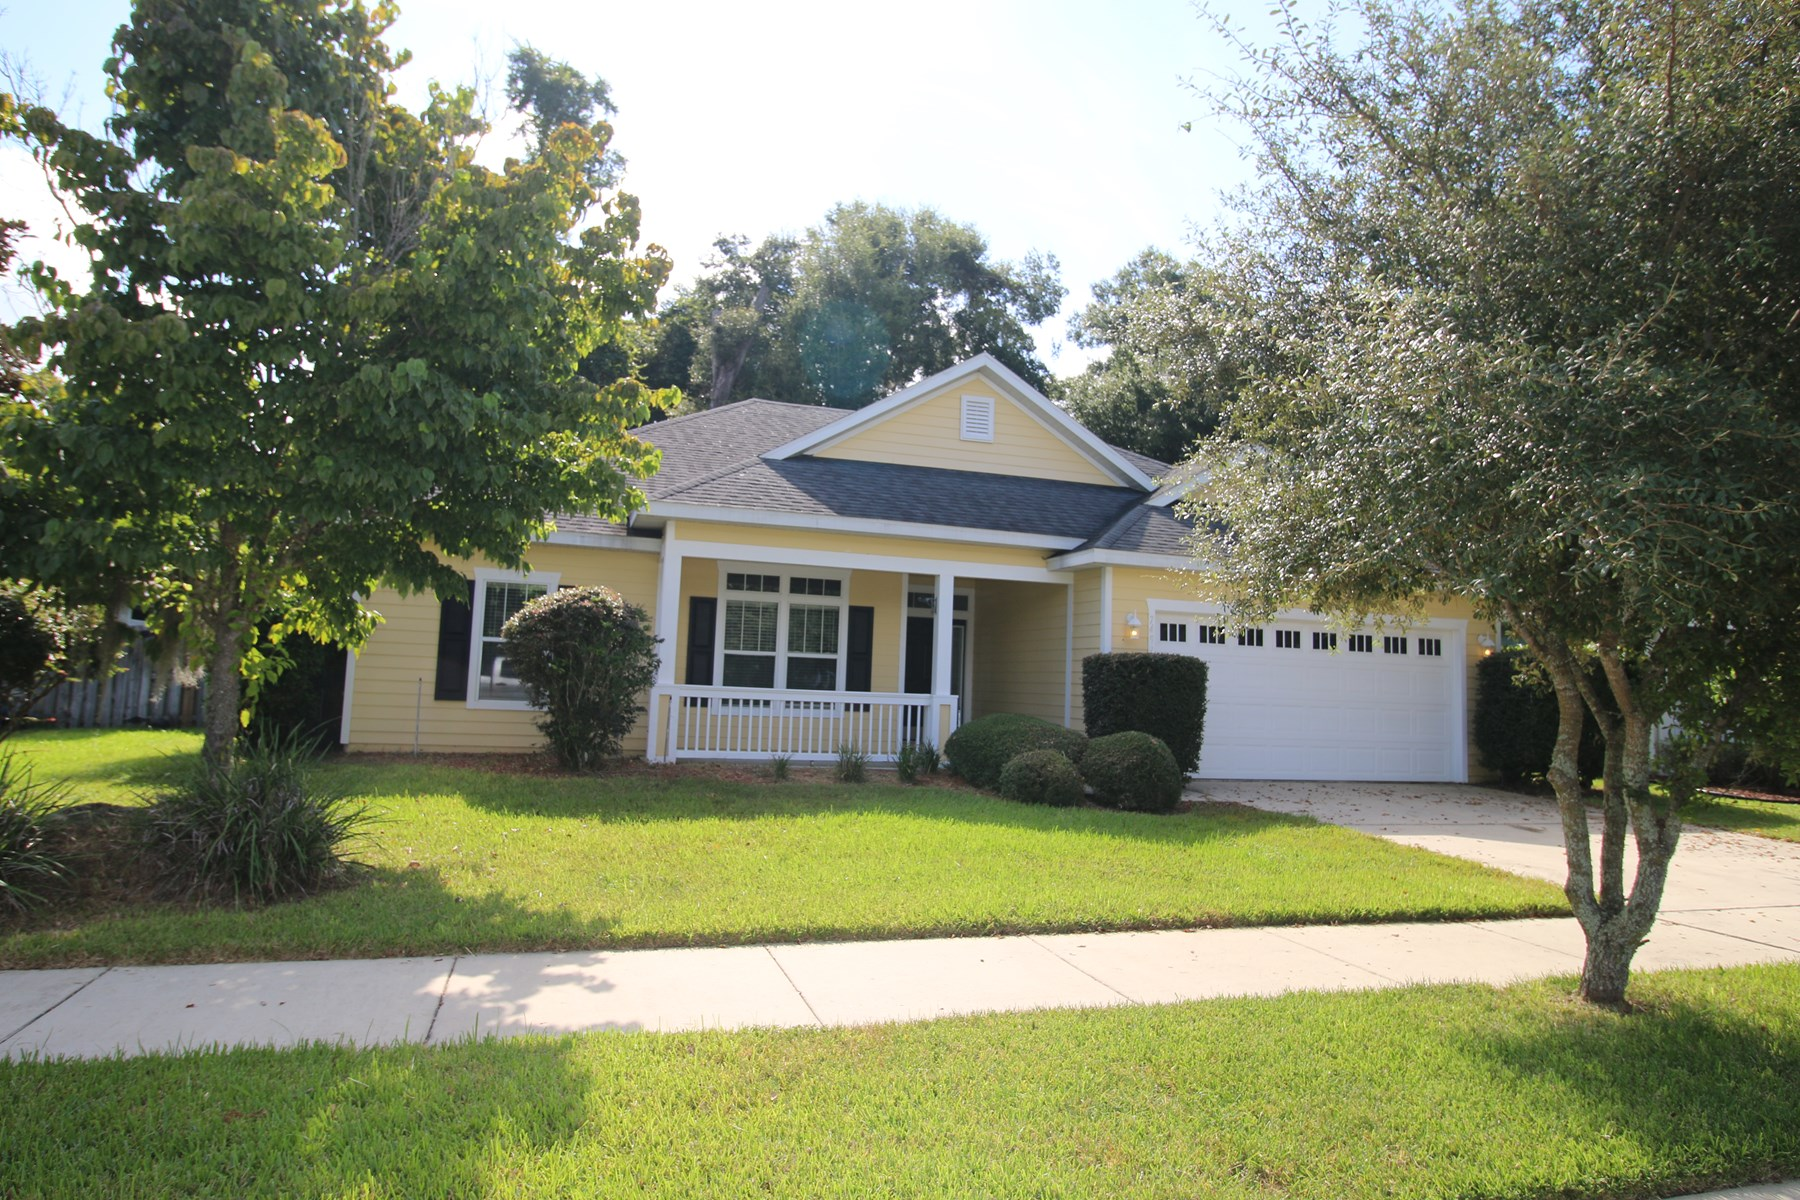 HOME IN GAINESVILLE FLORIDA - 3BR/2BA